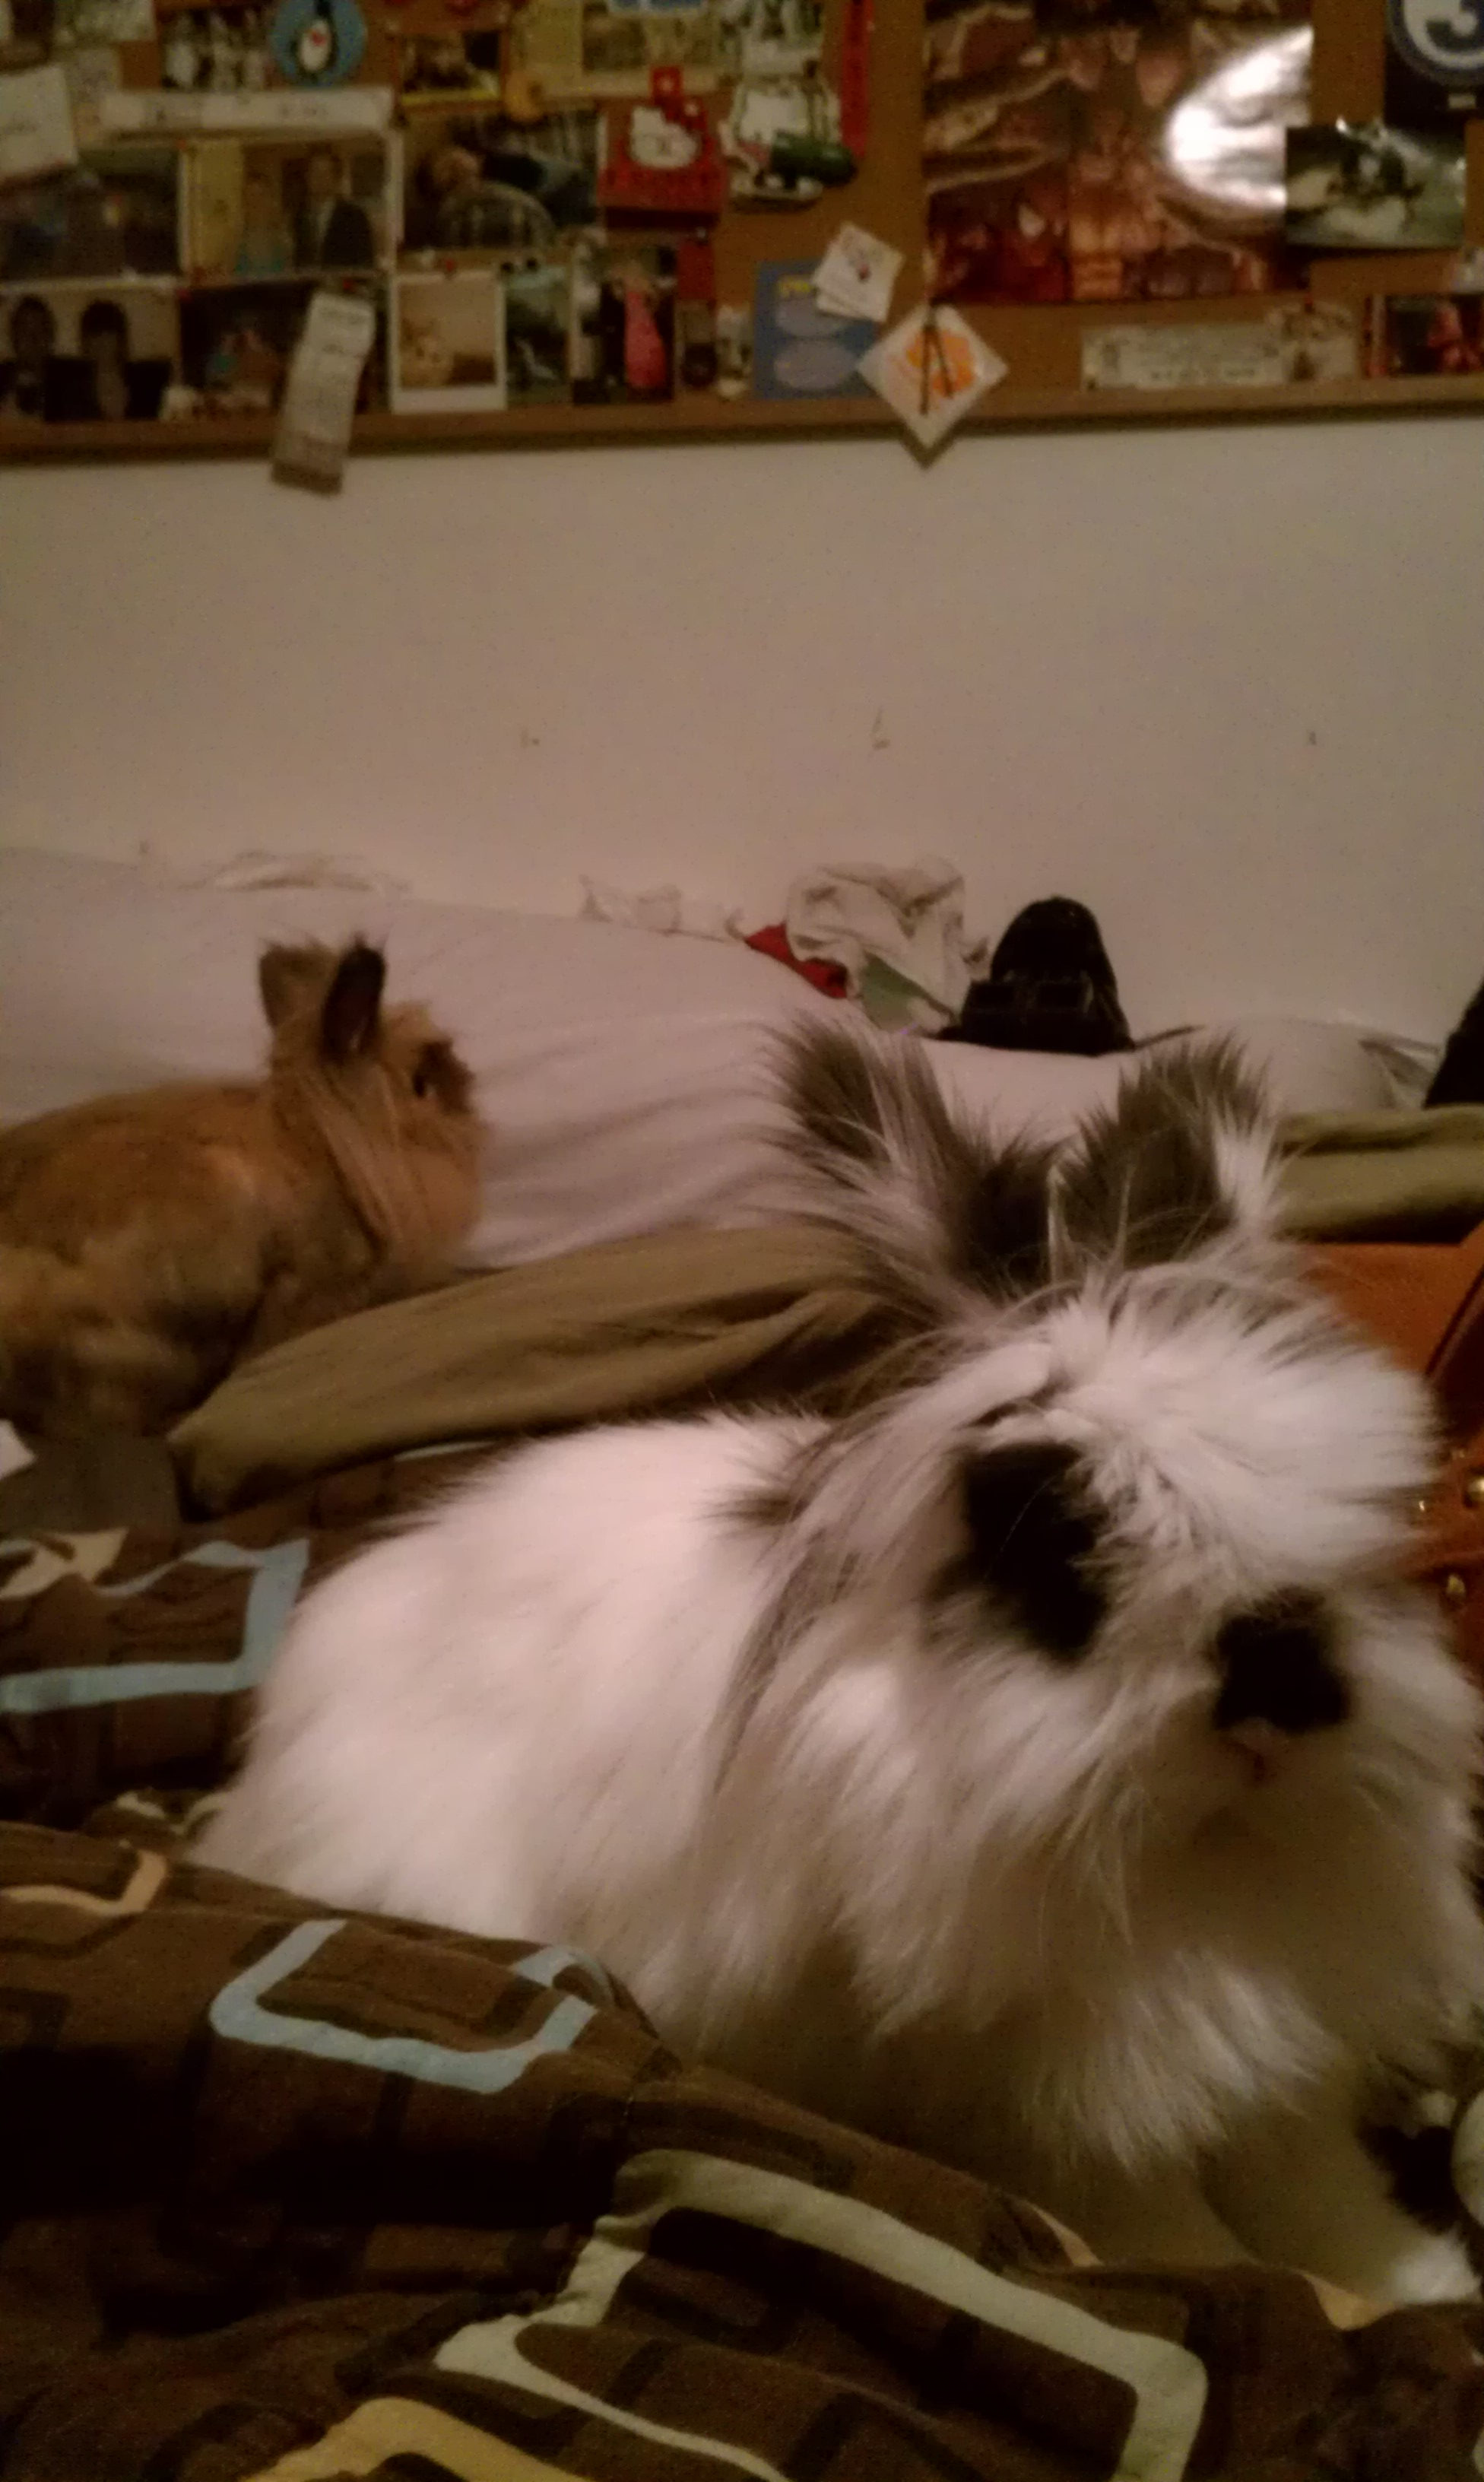 Bunnies Have Infiltrated Their Human's Sleeping Space